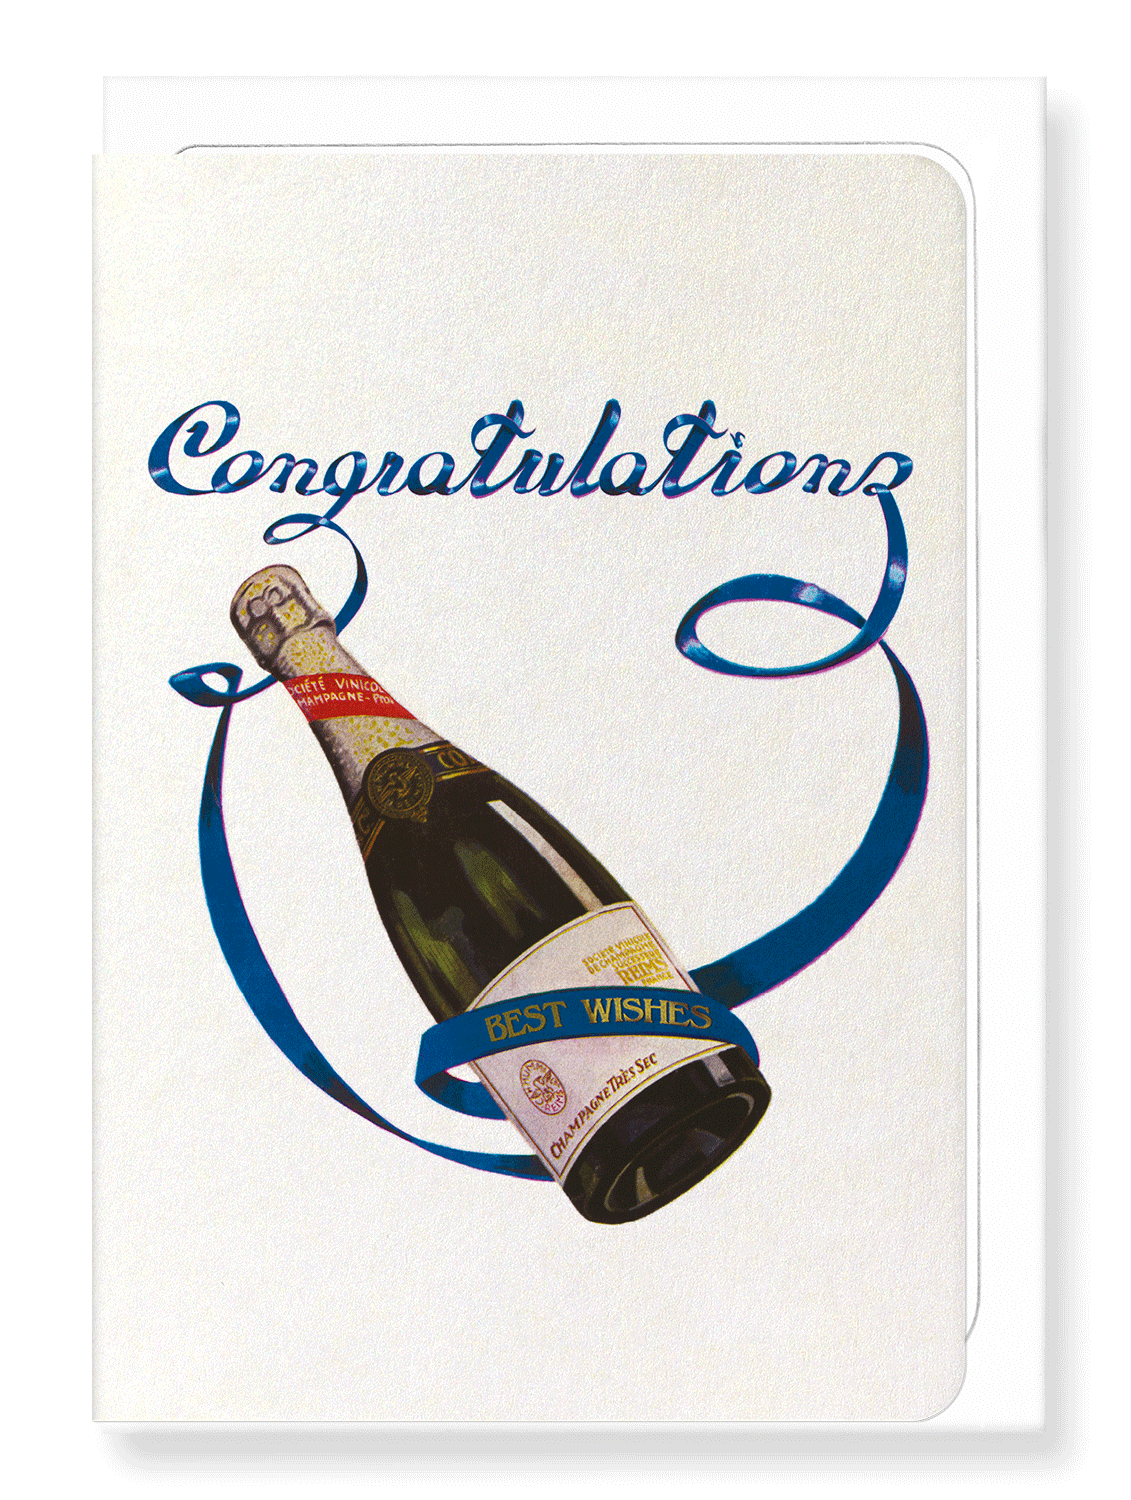 Ezen Designs - Champagne congratulations - Greeting Card - Front